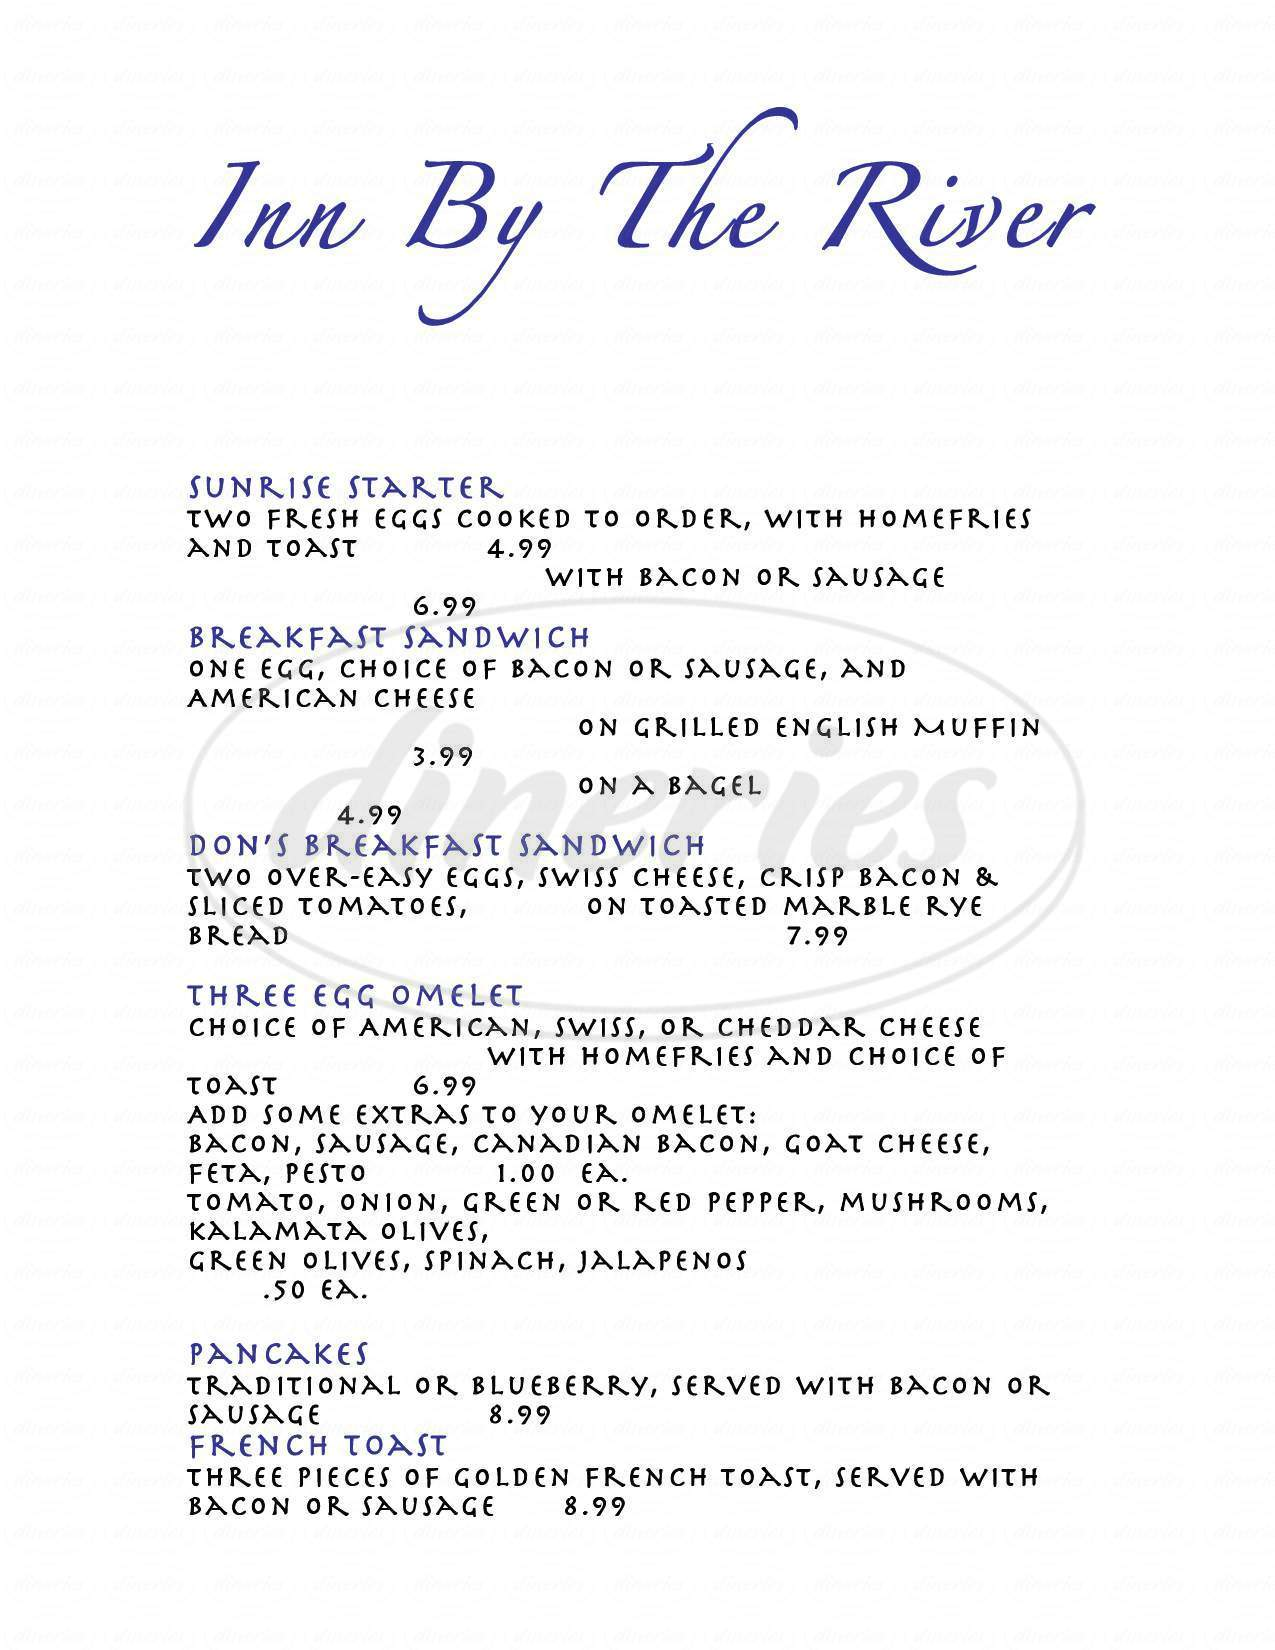 menu for Inn by the River